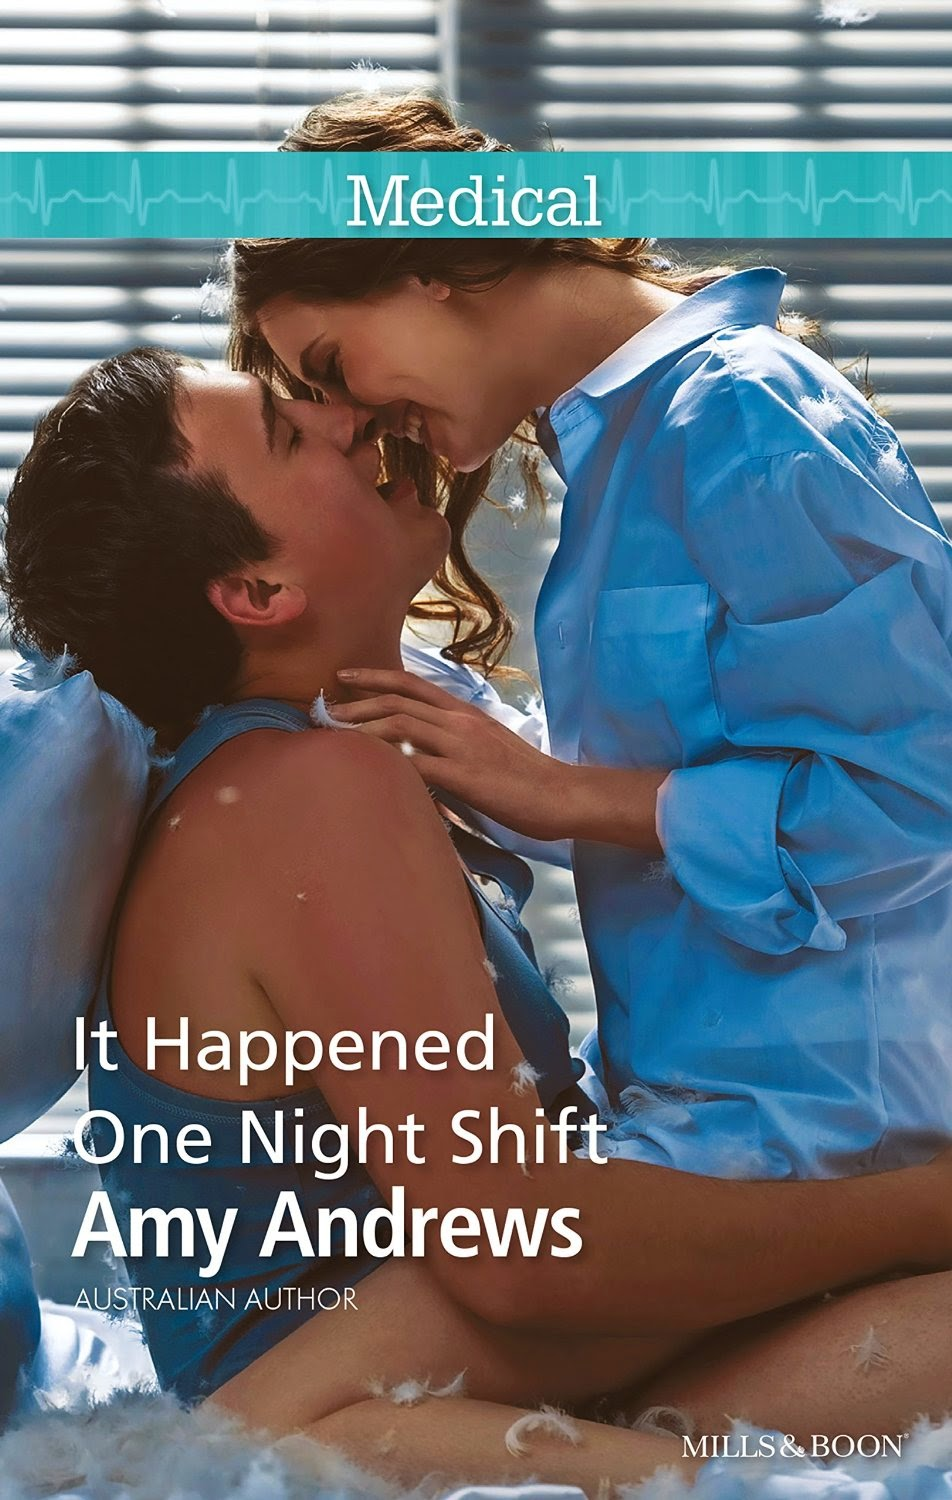 http://www.amazon.com/Happened-One-Night-Shift-ebook/dp/B00O93CL6U/ref=sr_1_1?ie=UTF8&qid=1420195605&sr=8-1&keywords=it+happened+one+night+shift